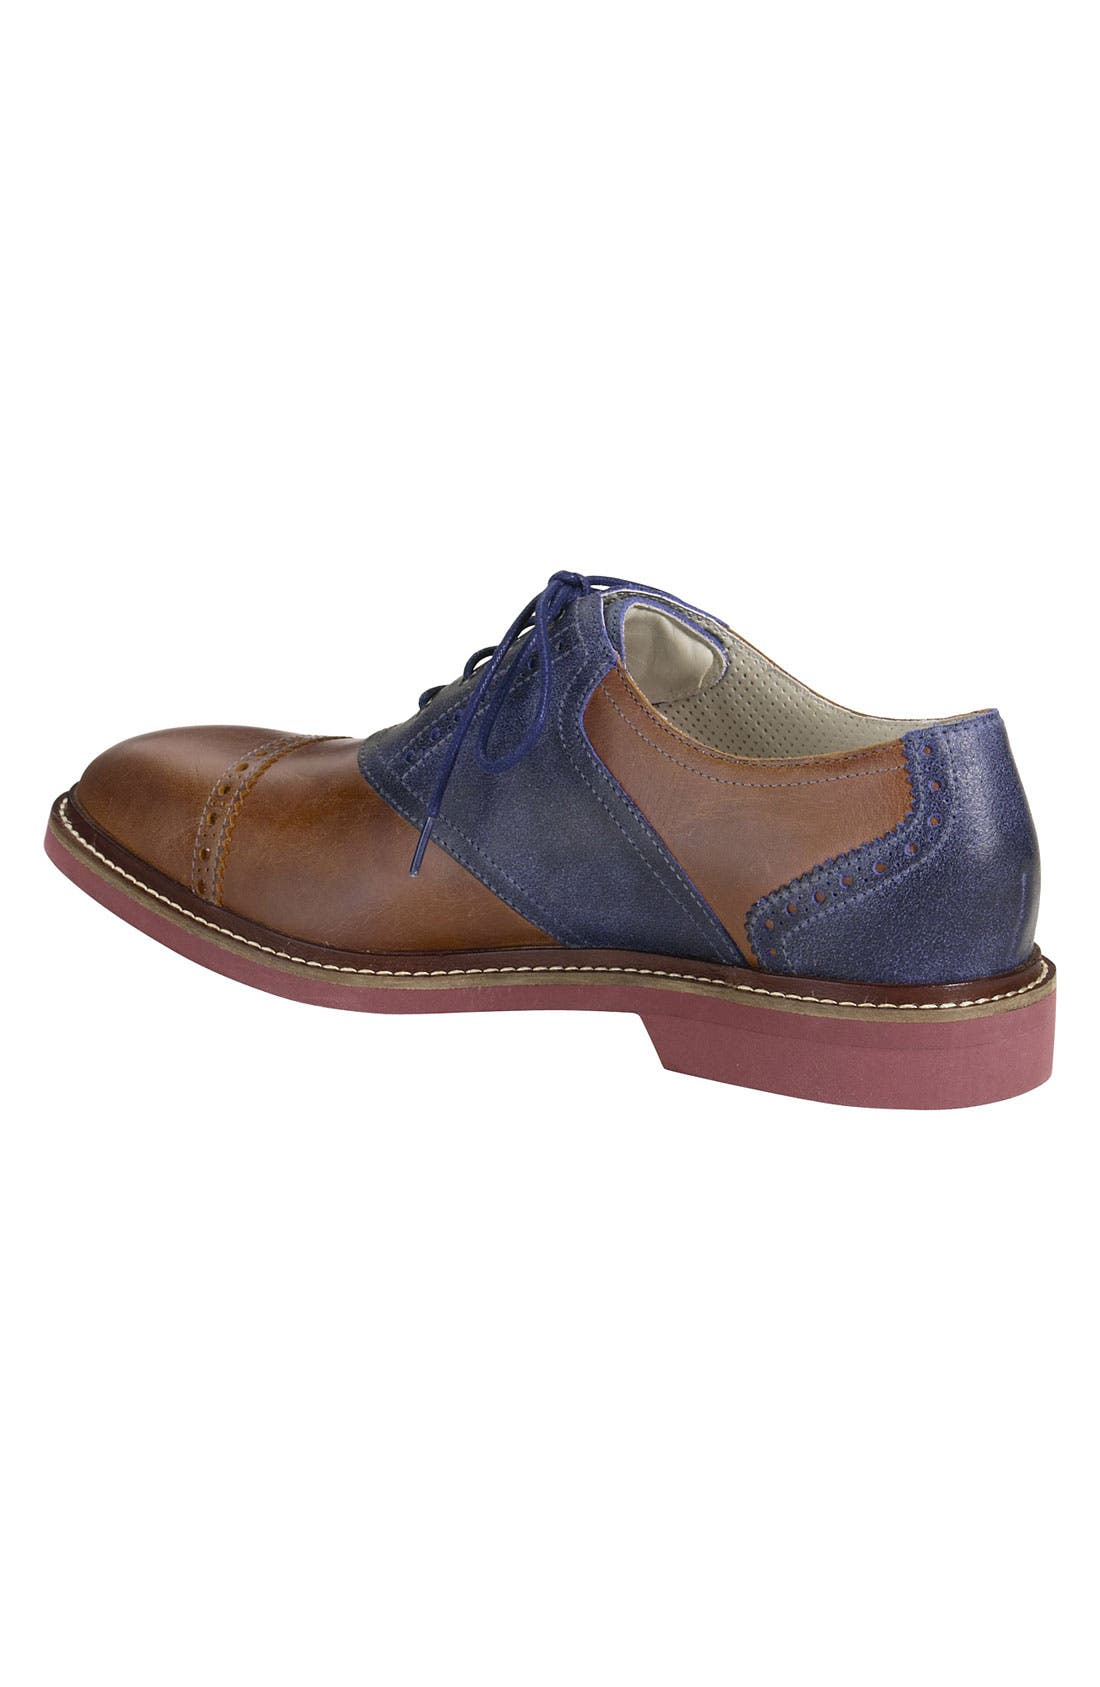 Alternate Image 2  - Cole Haan 'Air Franklin' Saddle Oxford